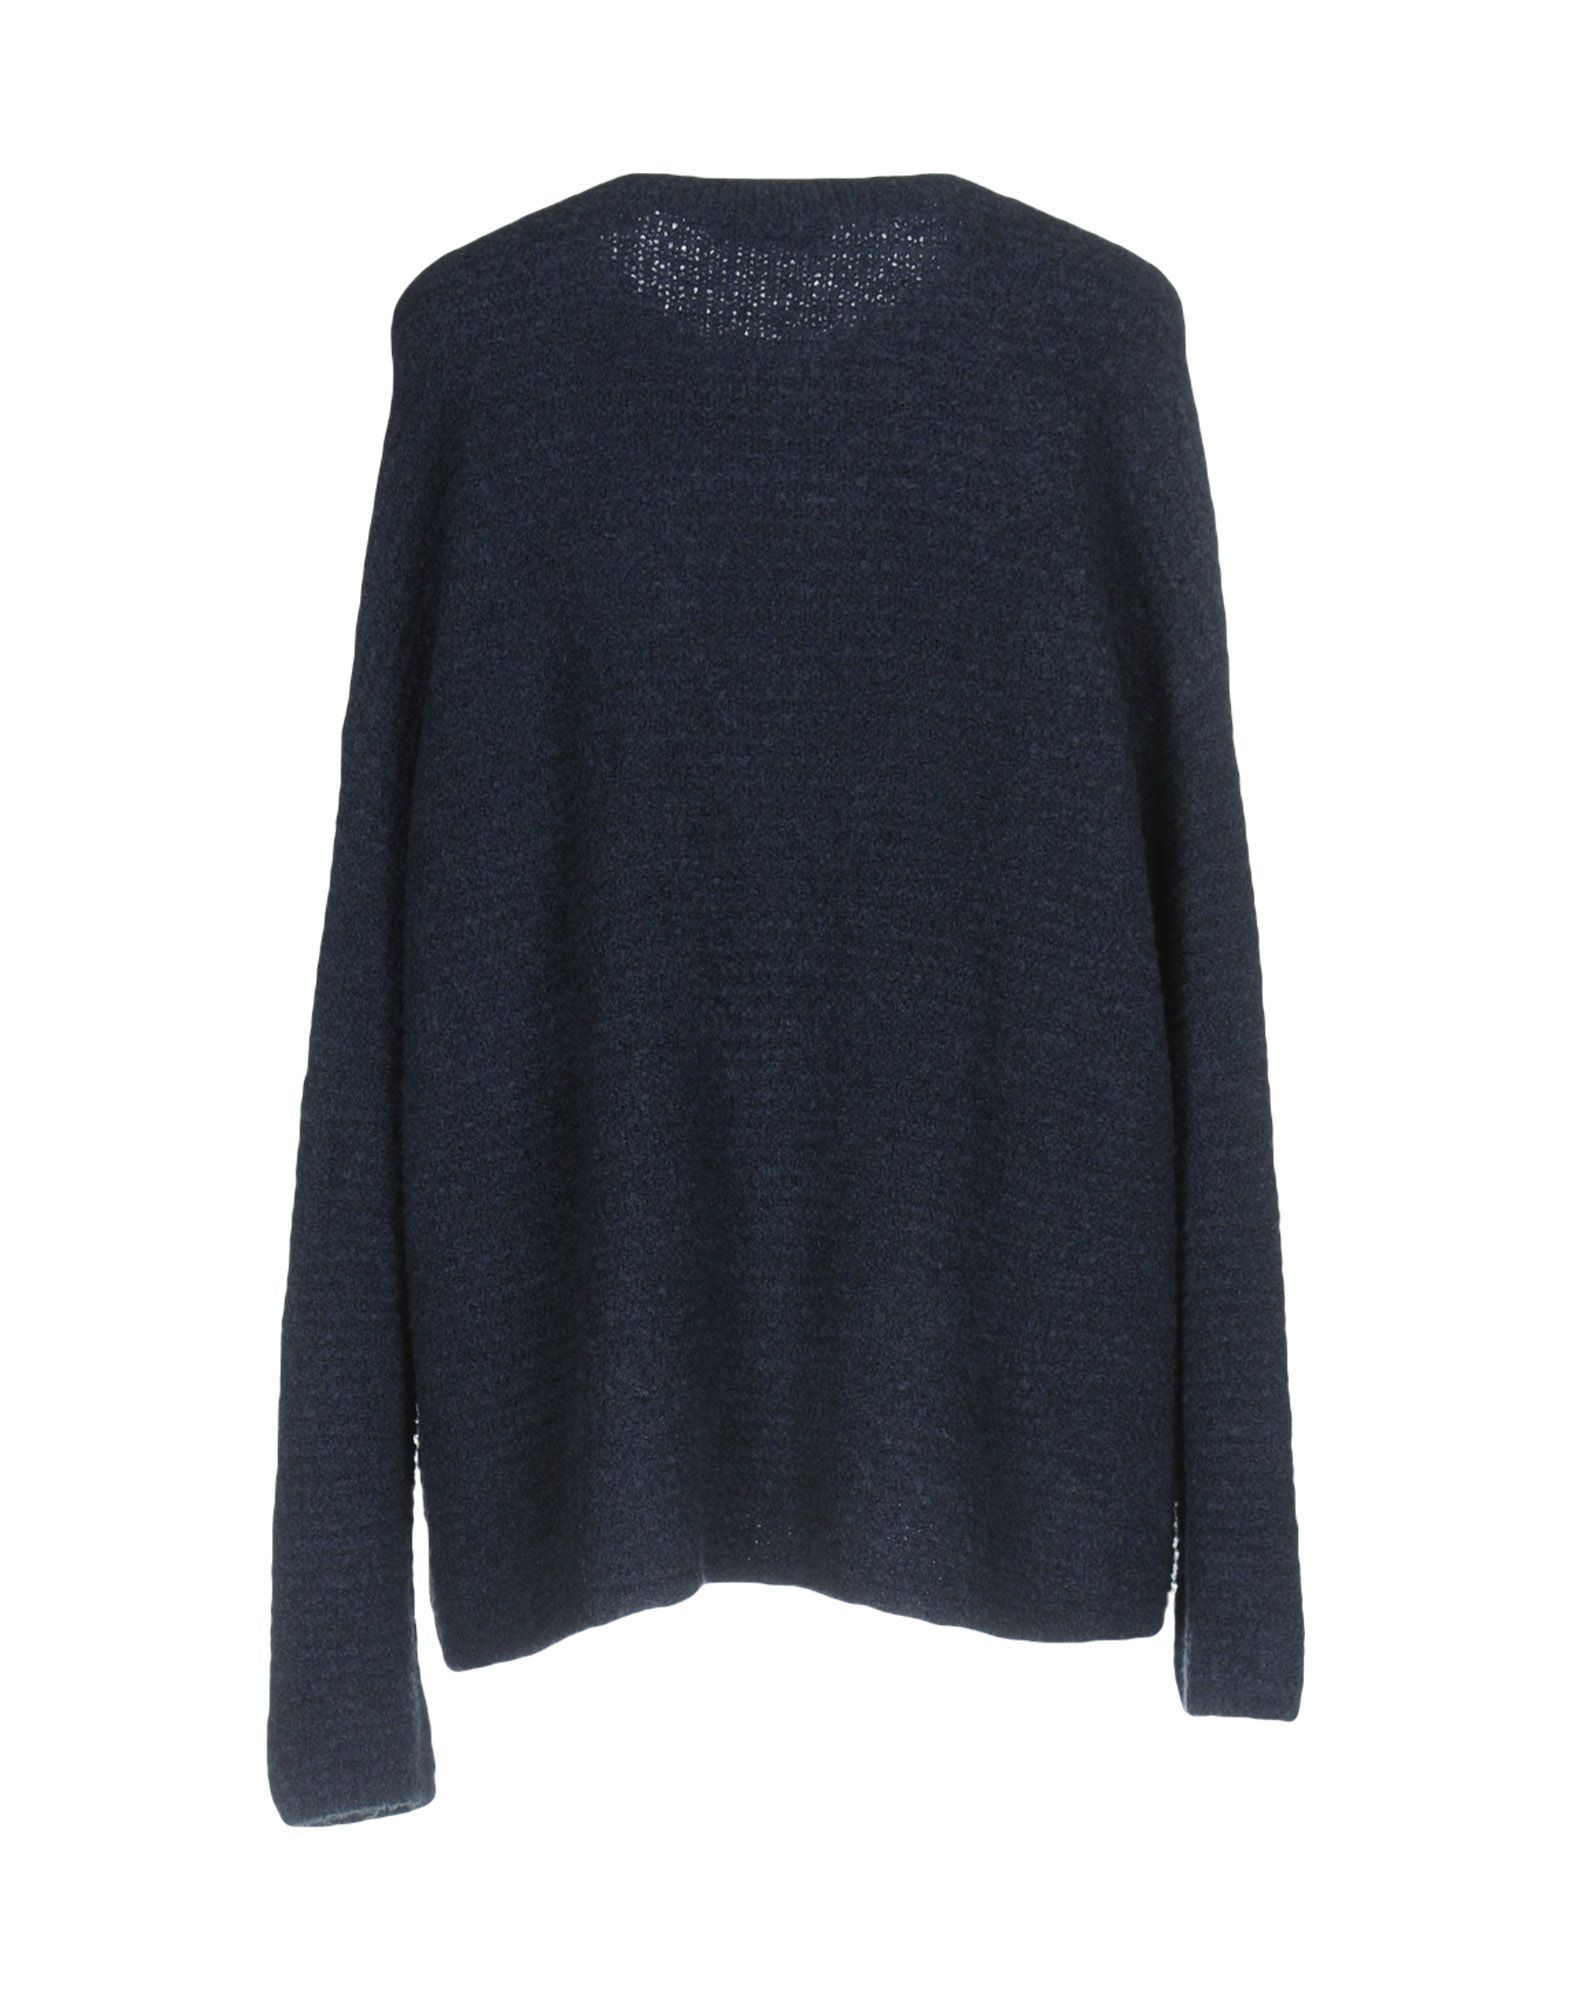 Vince. Blue Wool Knit Jumper